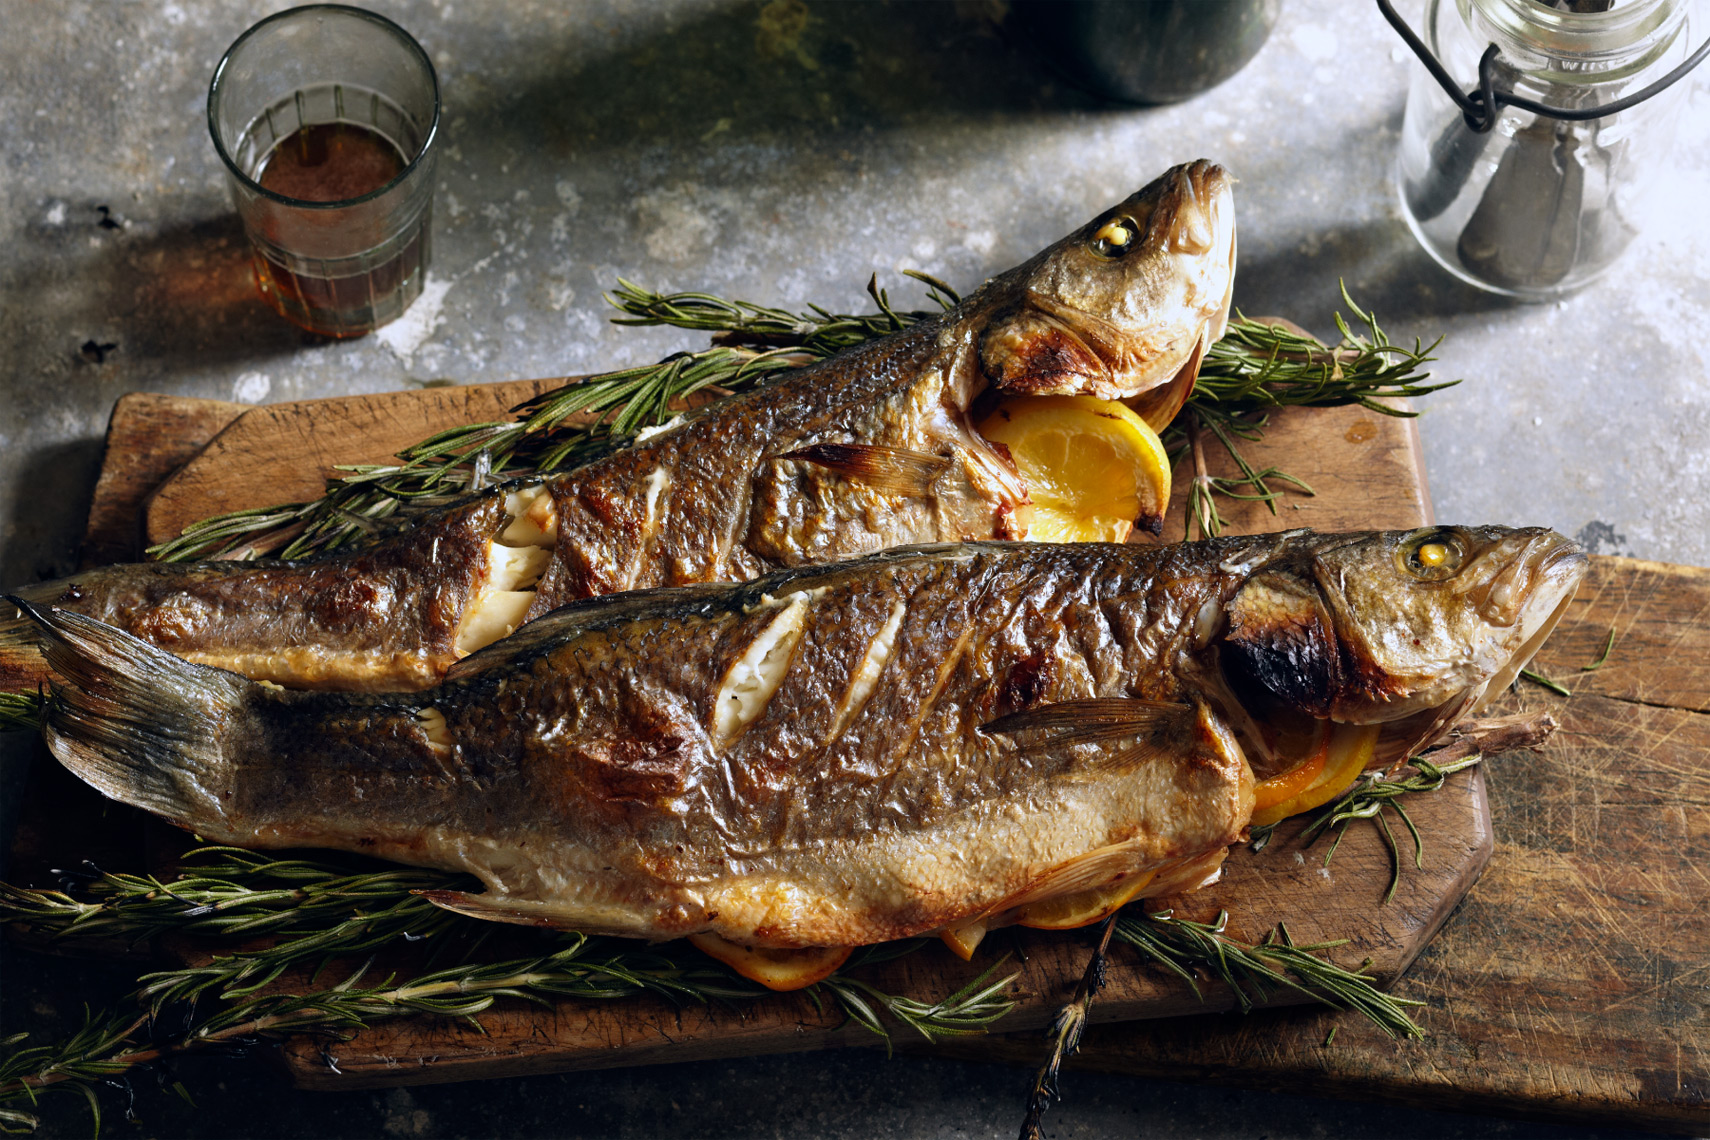 Glasshouse Assignment - Bob Martus - Food Photography - Fish Dinner